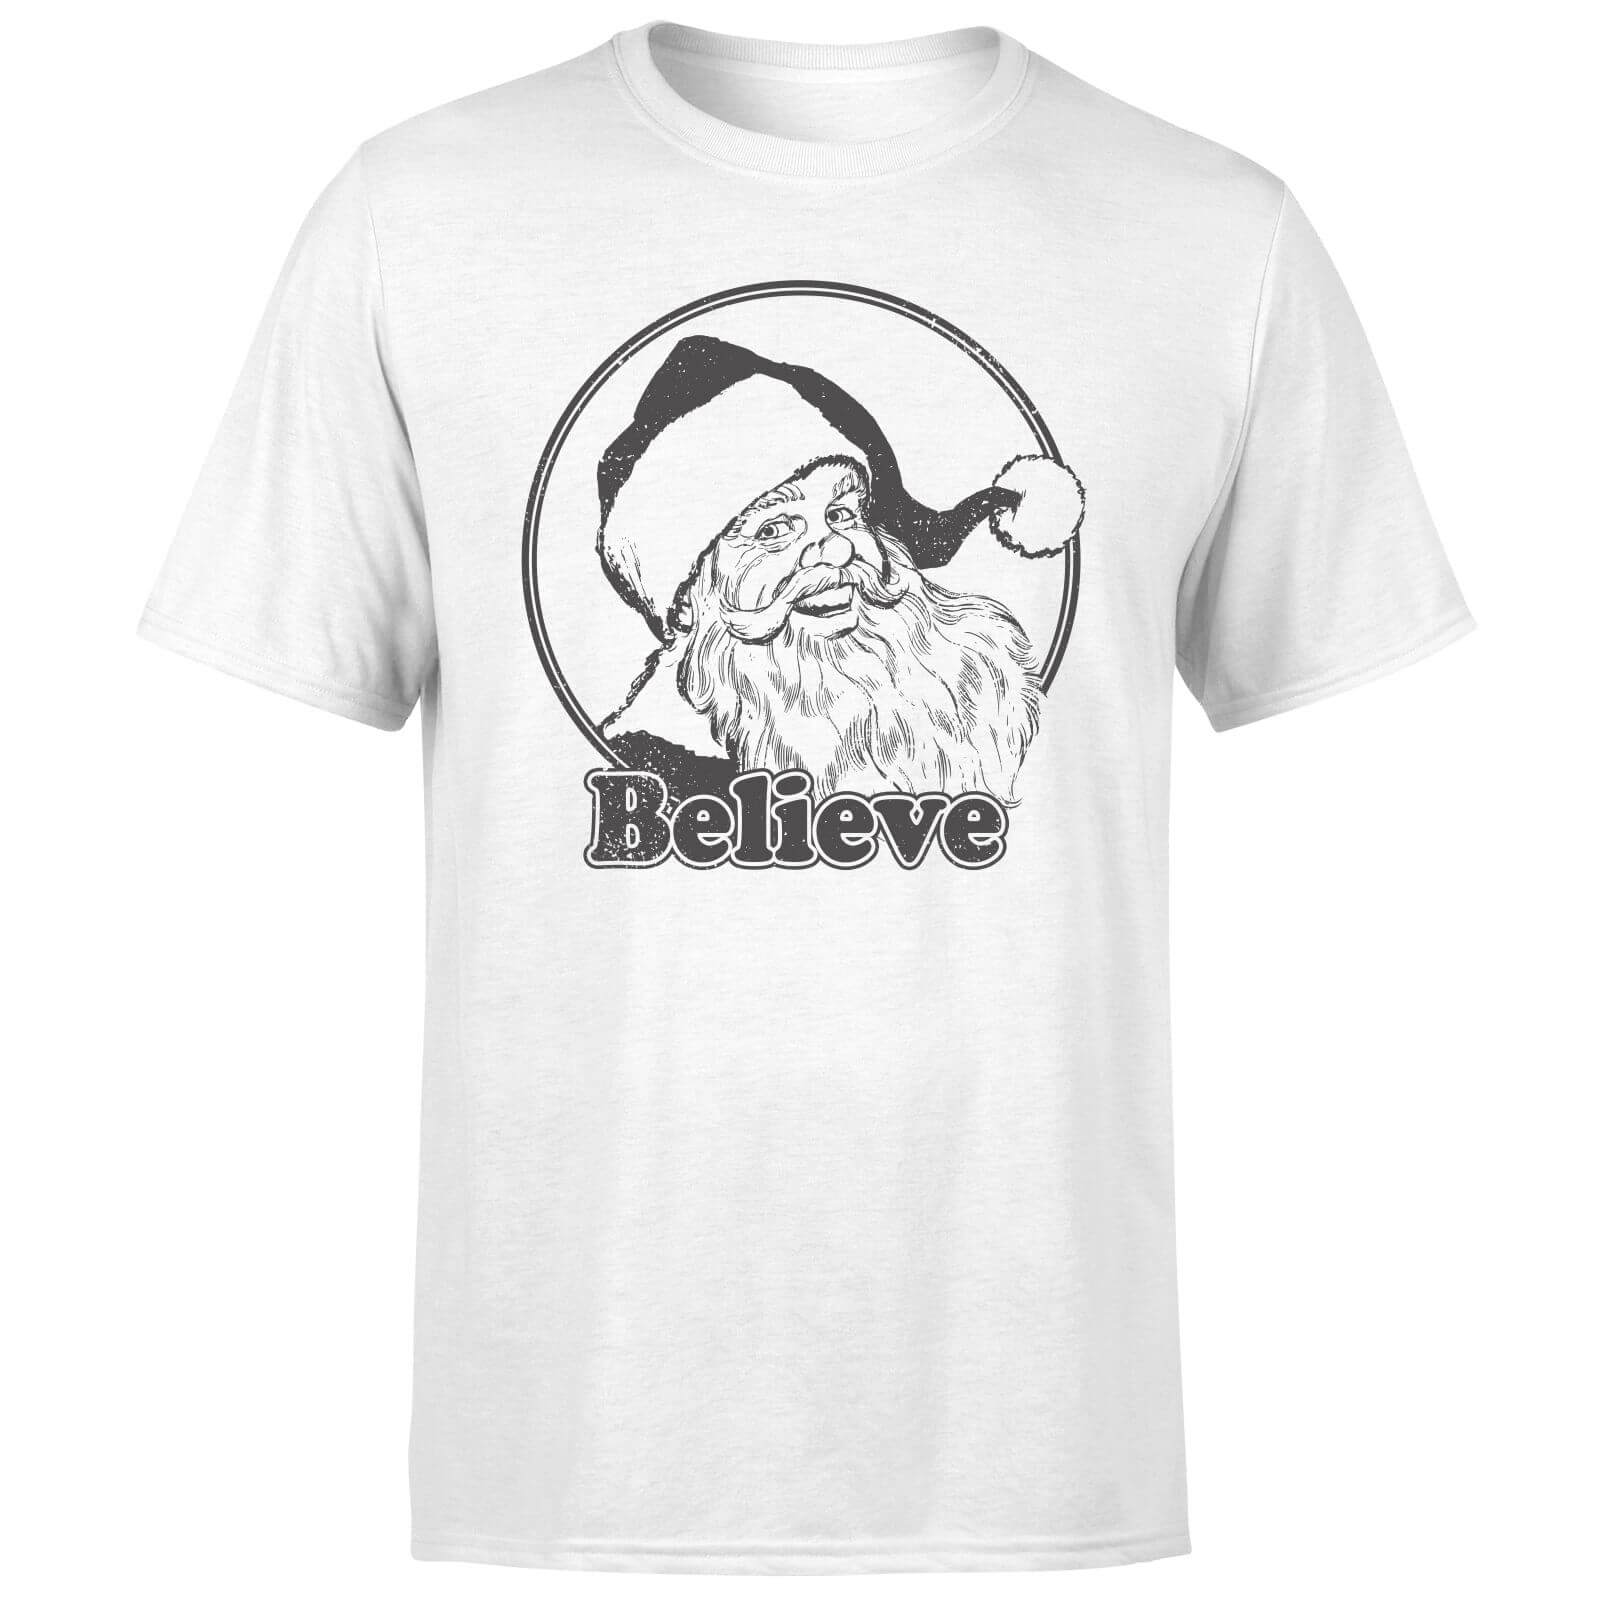 Believe Grey T-Shirt - White